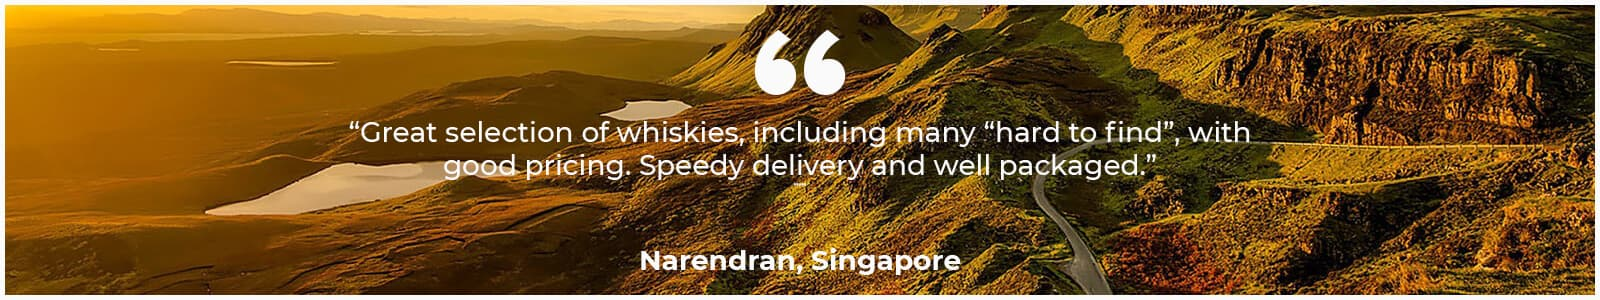 Customer testimonial for Whisky Business